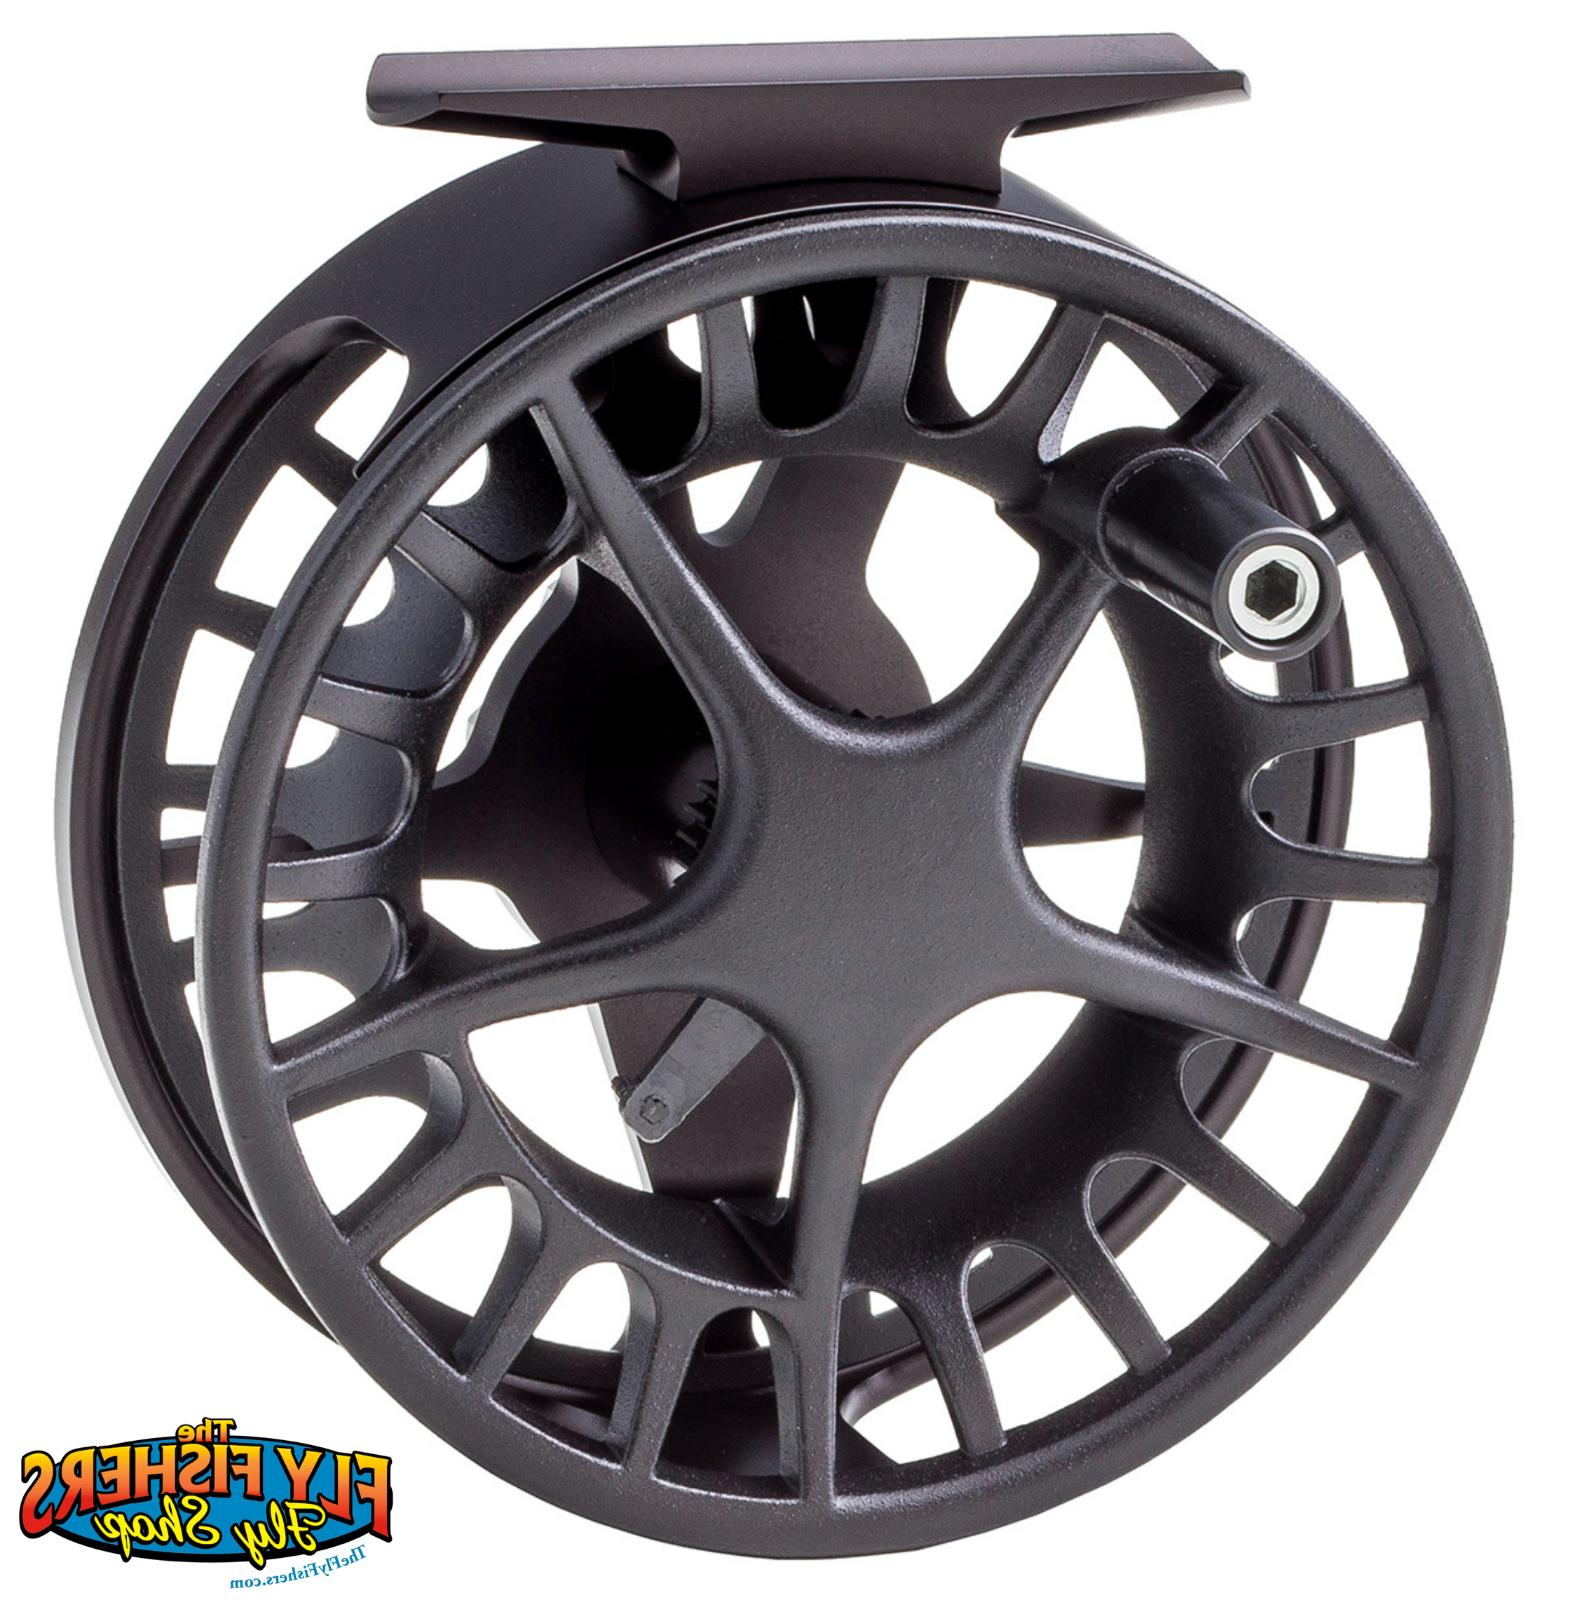 Lamson 9-10wt Fly Fishing - NEW